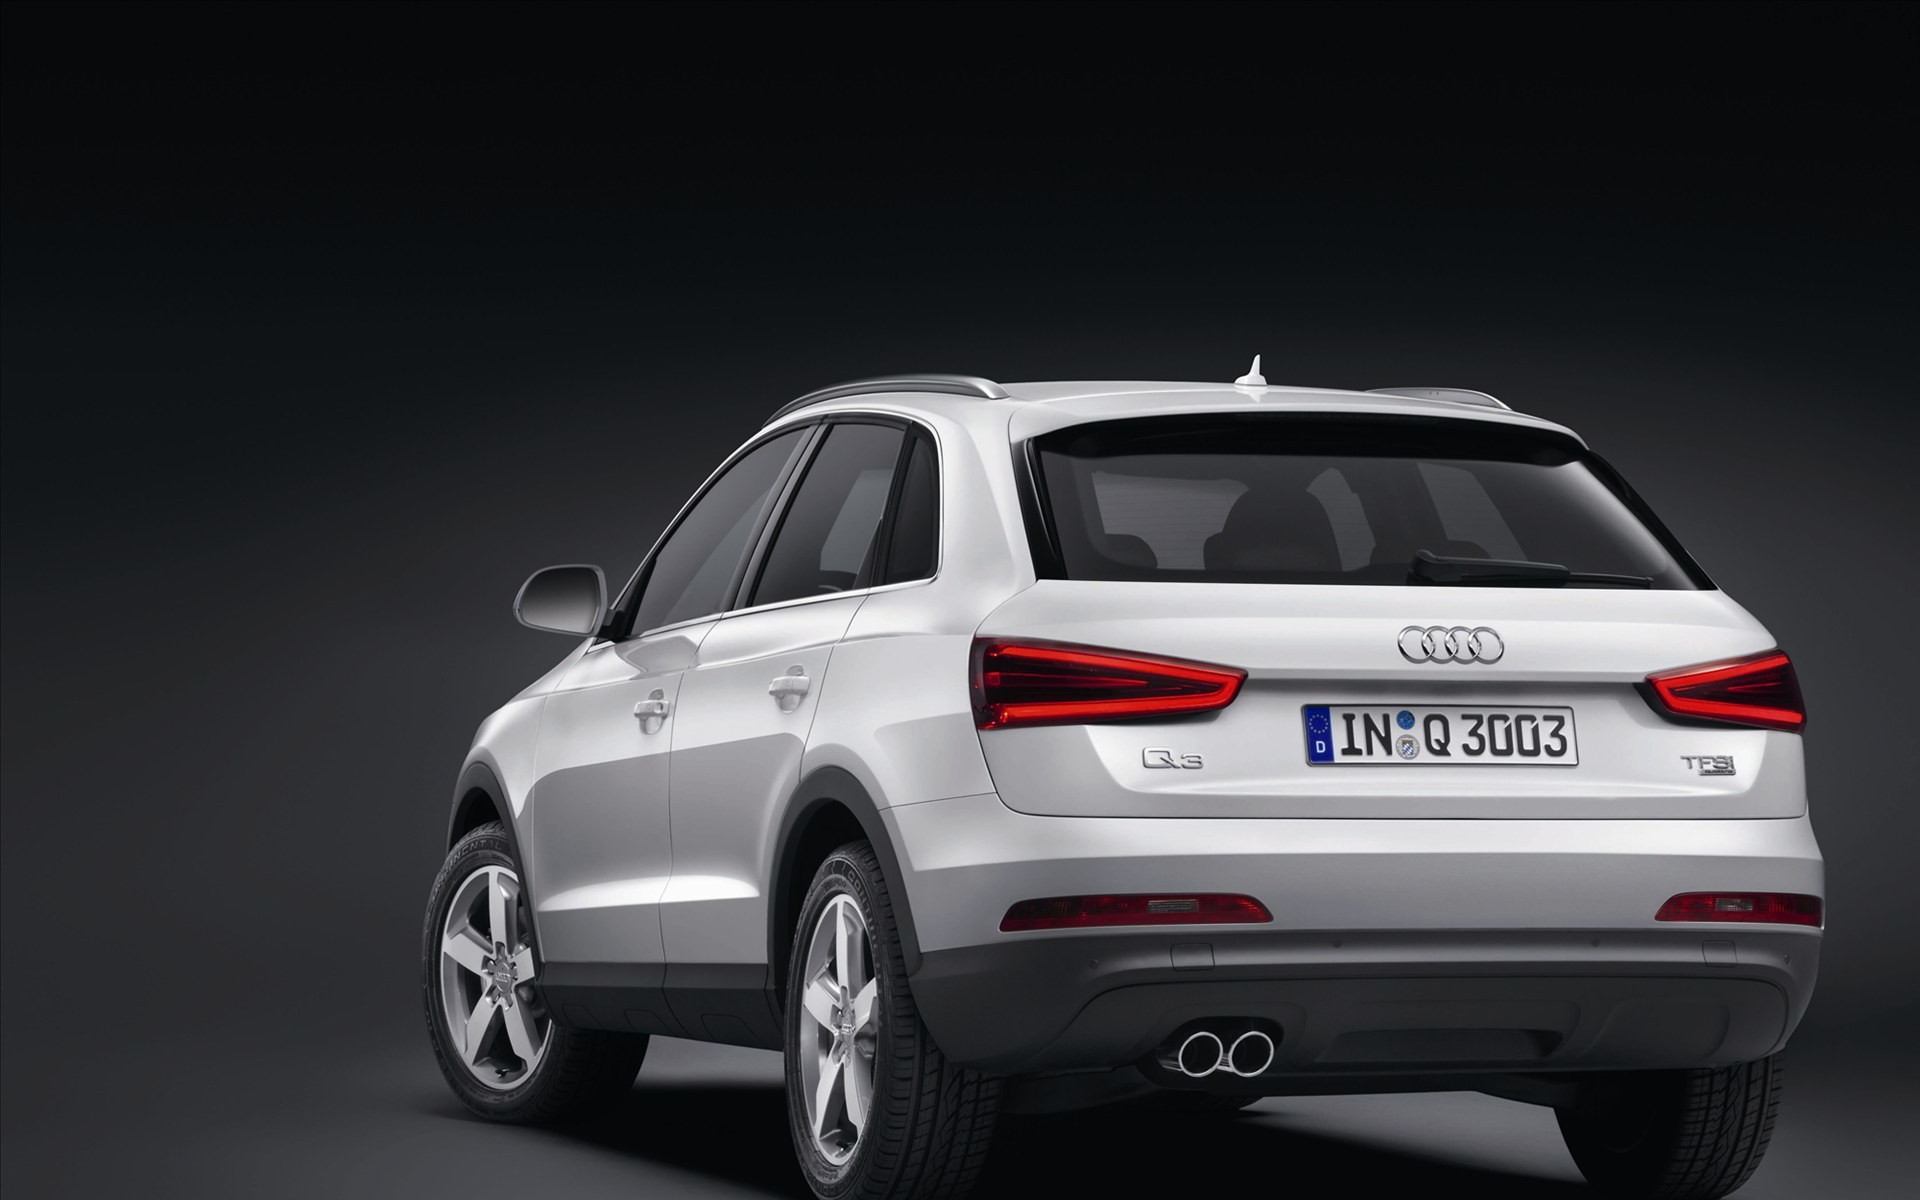 2012 Audi Q3 2 Wallpaper Hd Car Wallpapers Id 1977